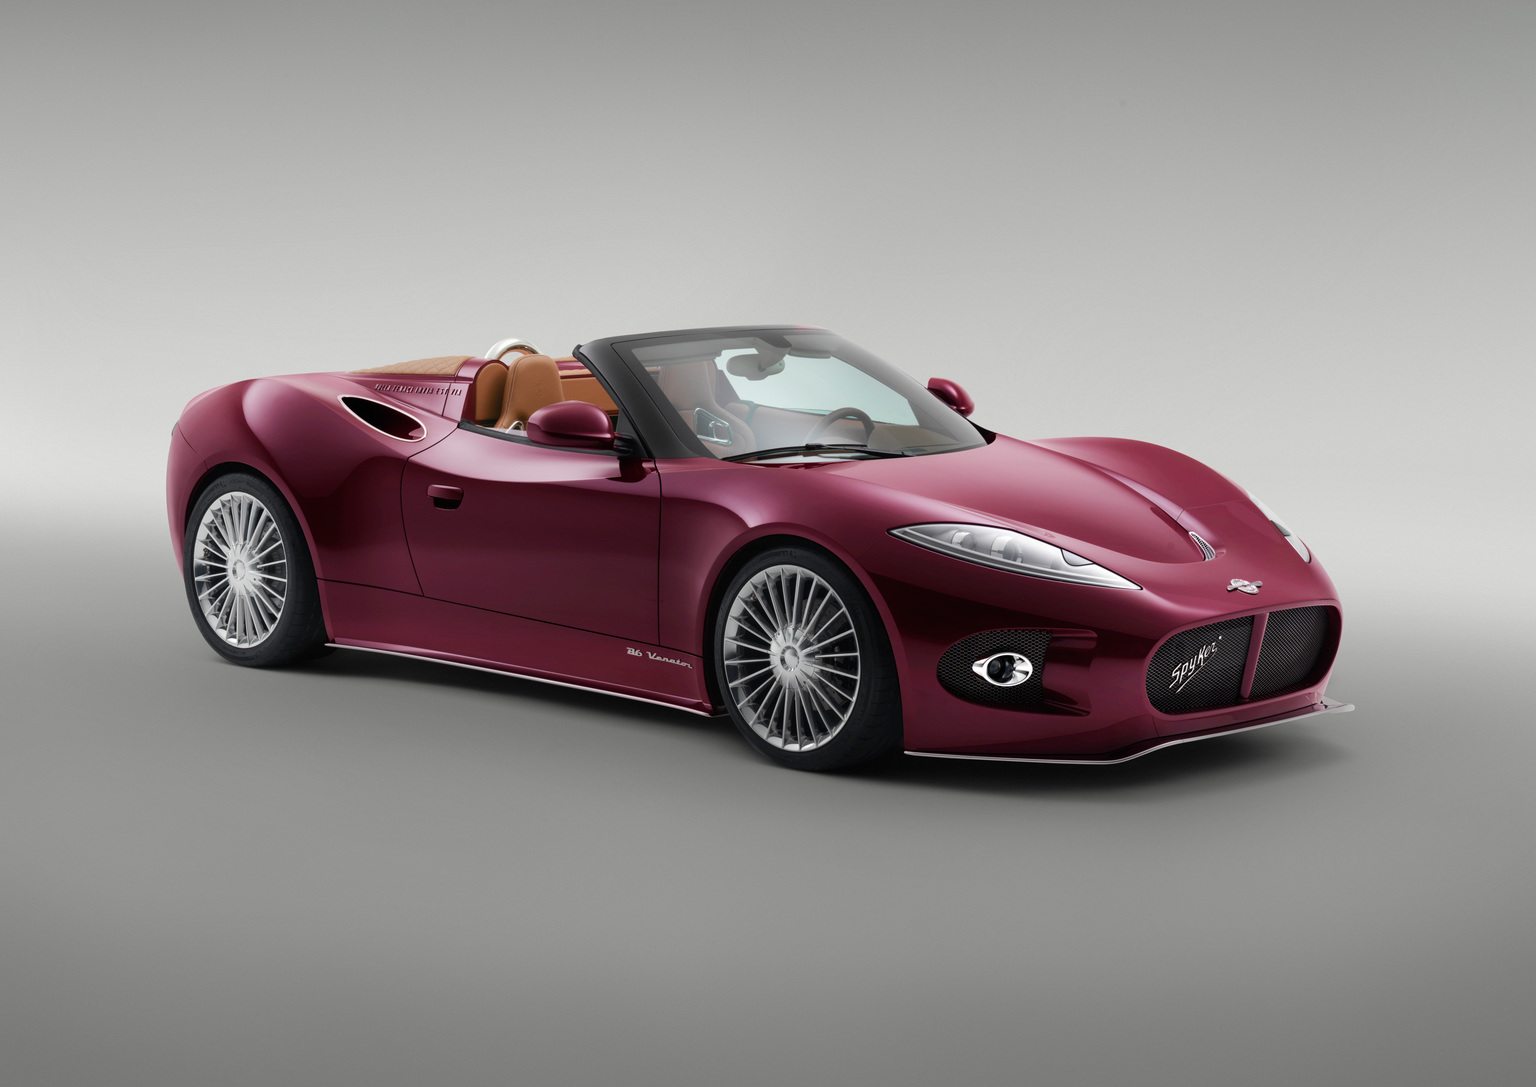 2013 Spyker B6 Venator Concept photo - 1